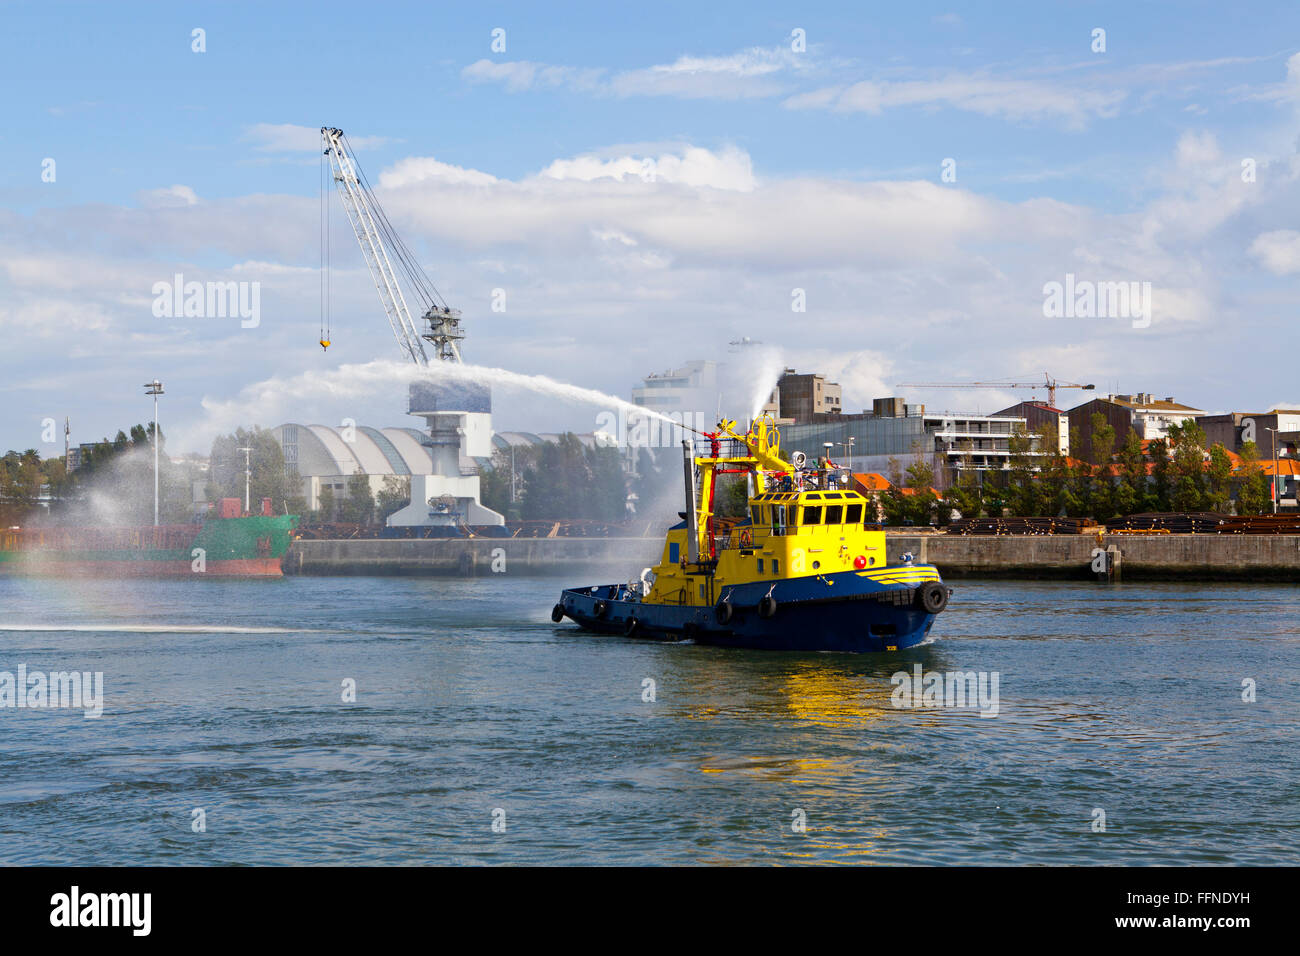 Commercial Dock with a Tugboat - Stock Image